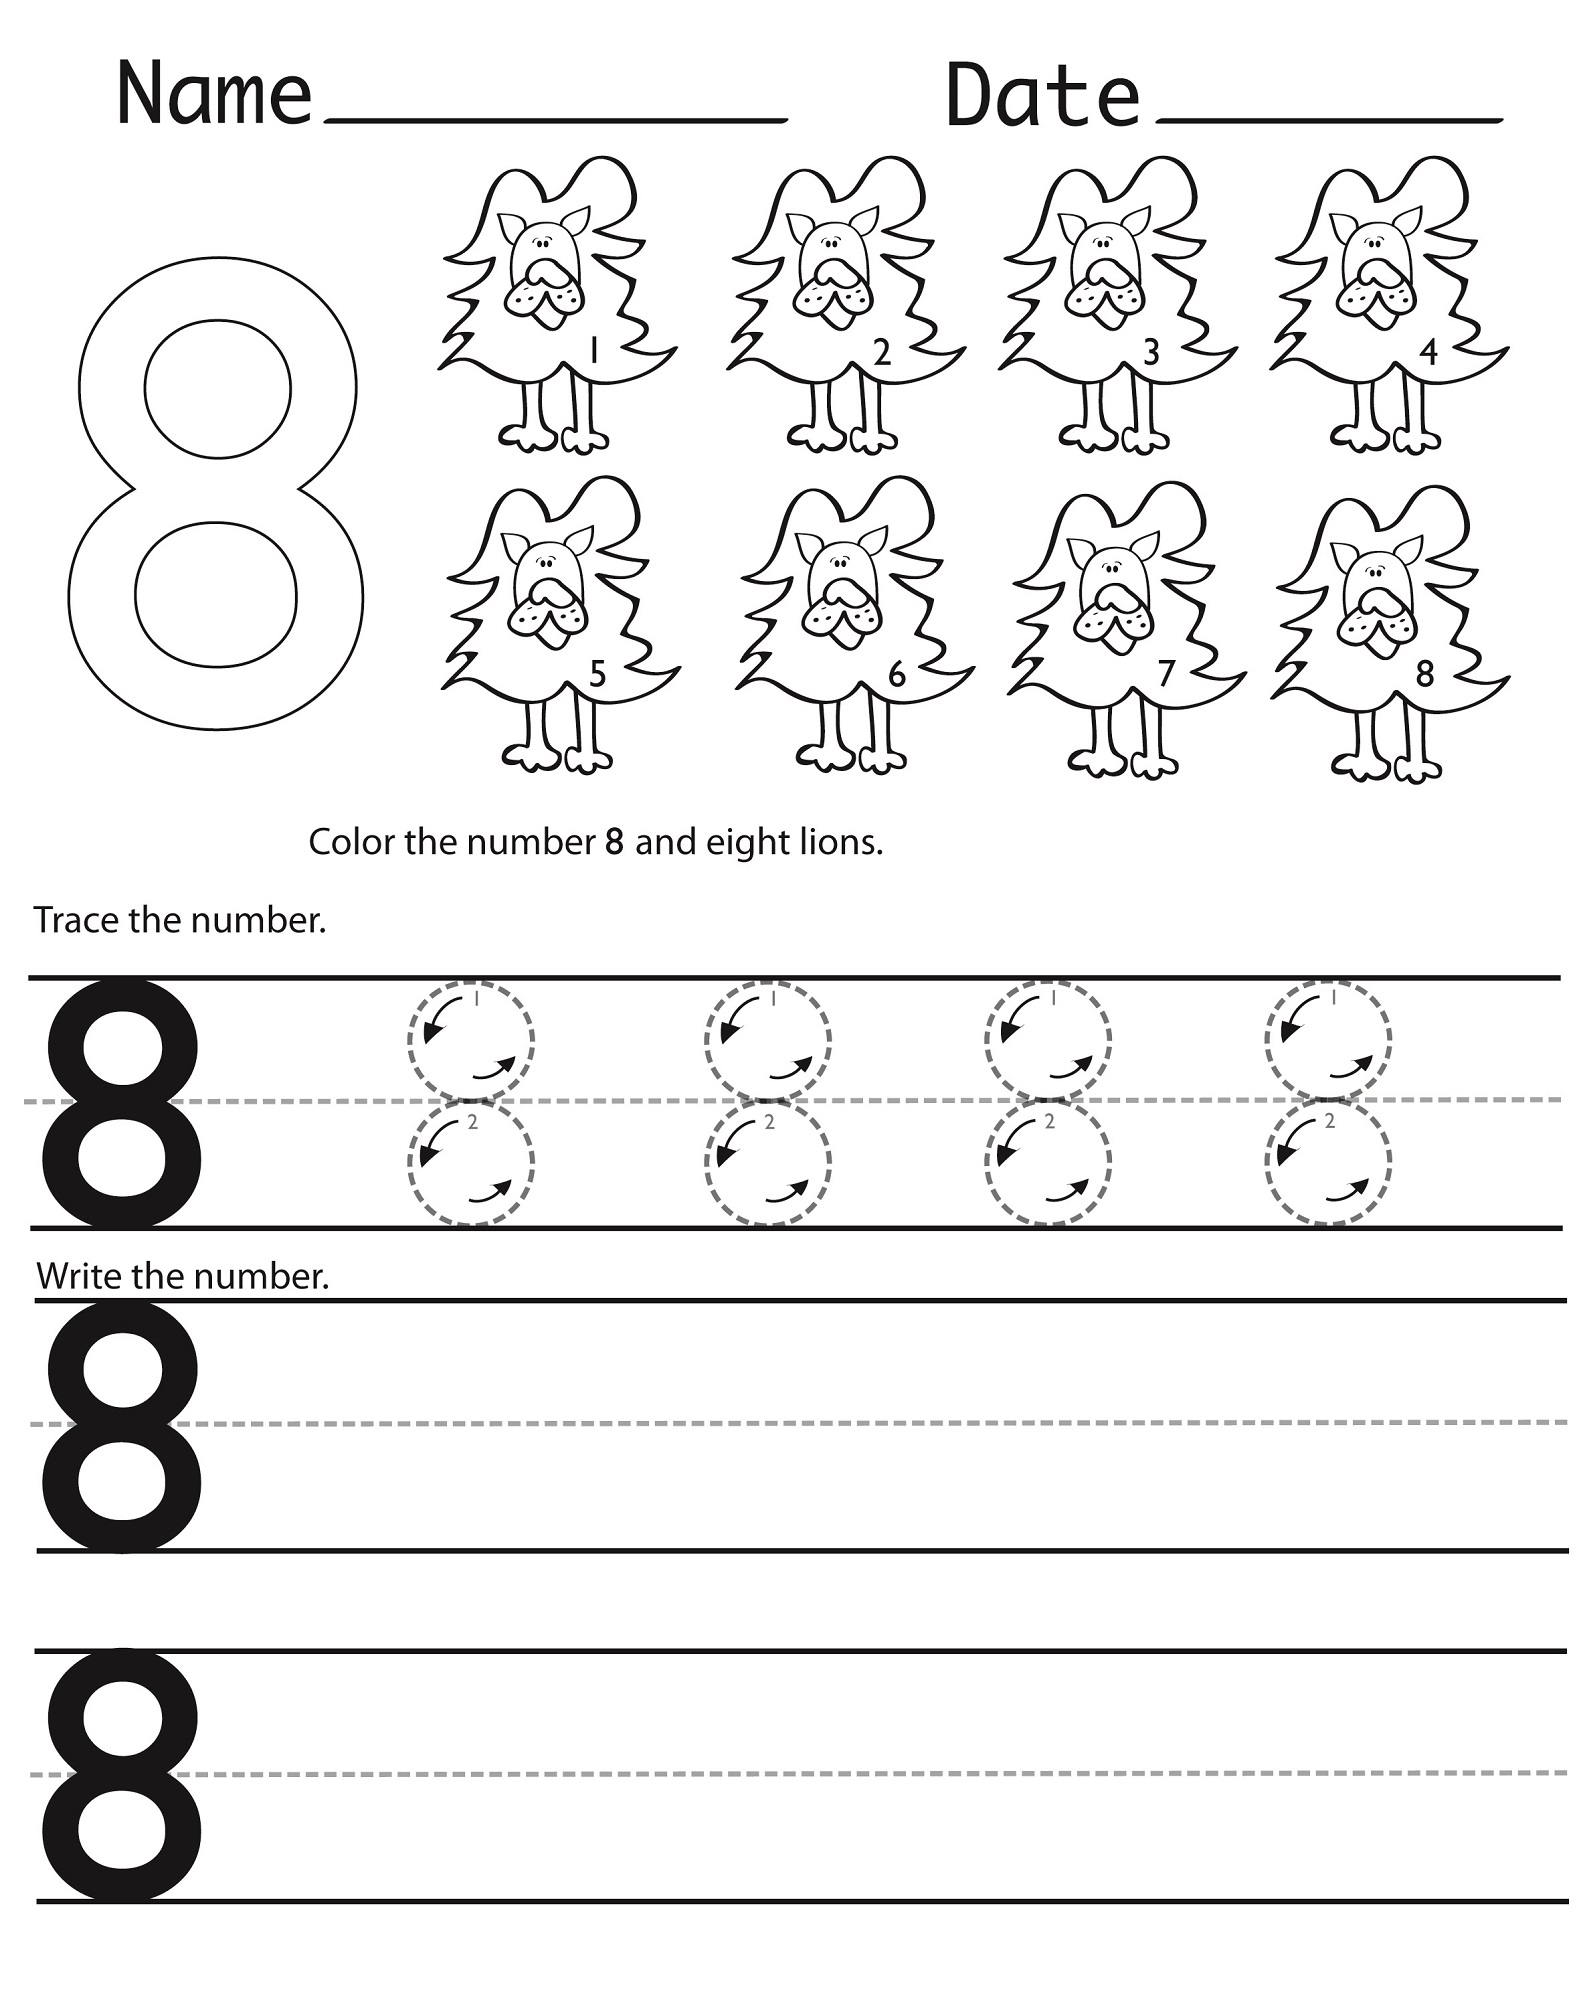 Free Number 8 Worksheet To Print